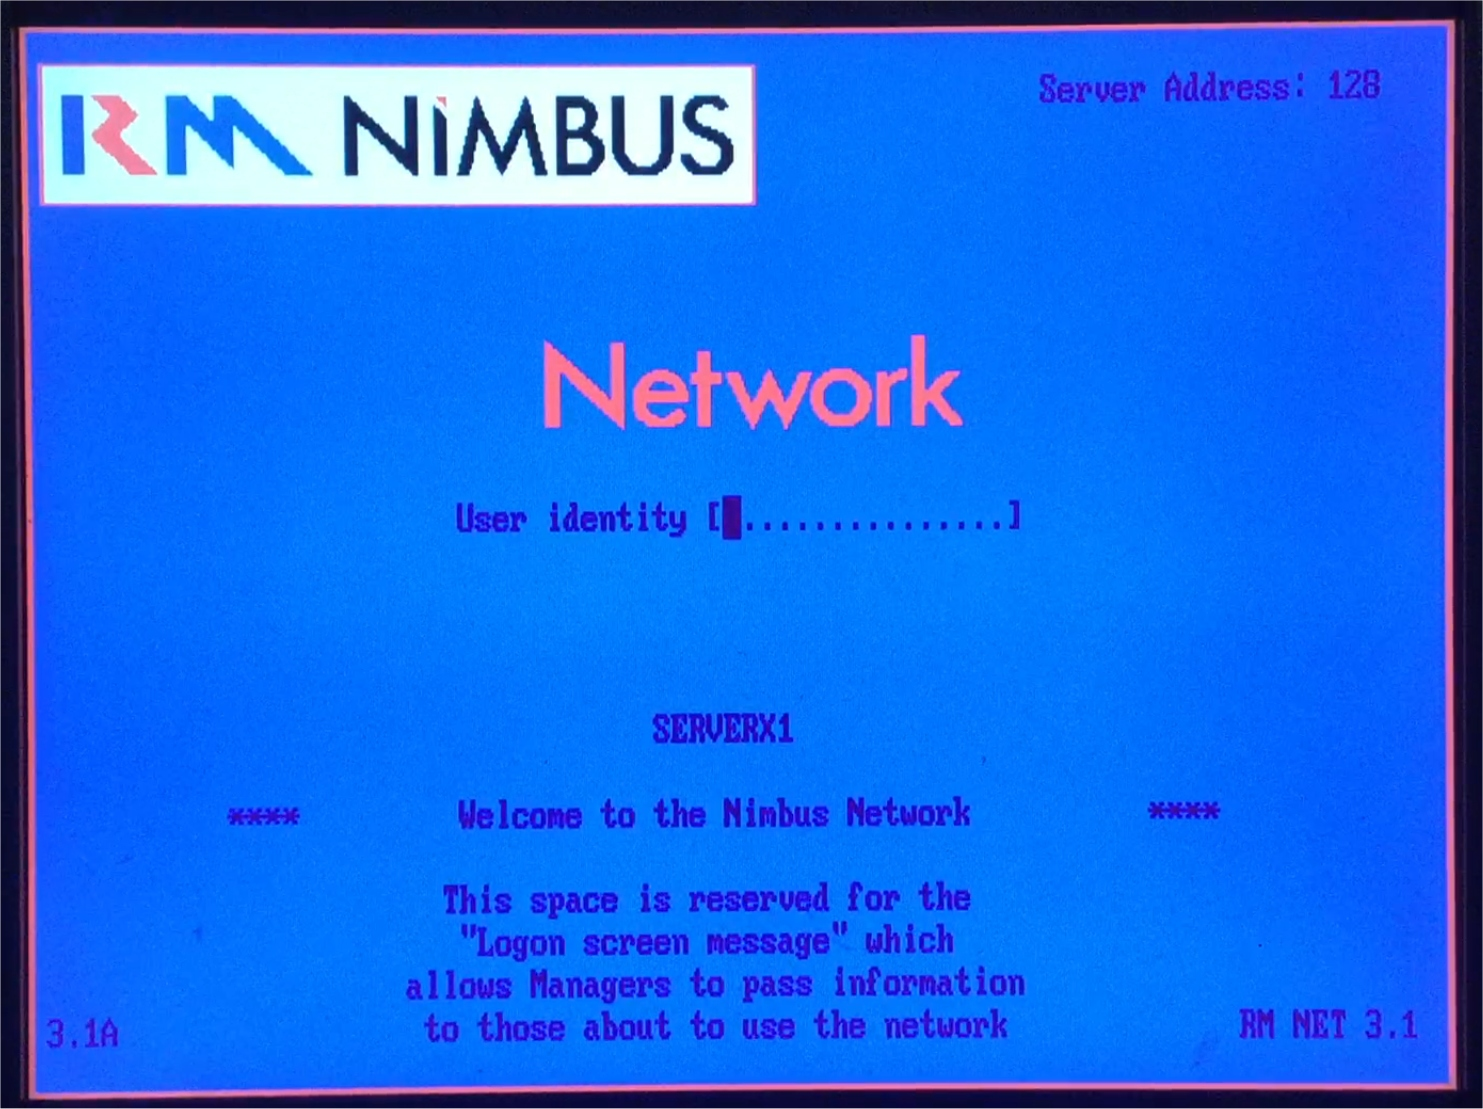 RM Nimbus login screen